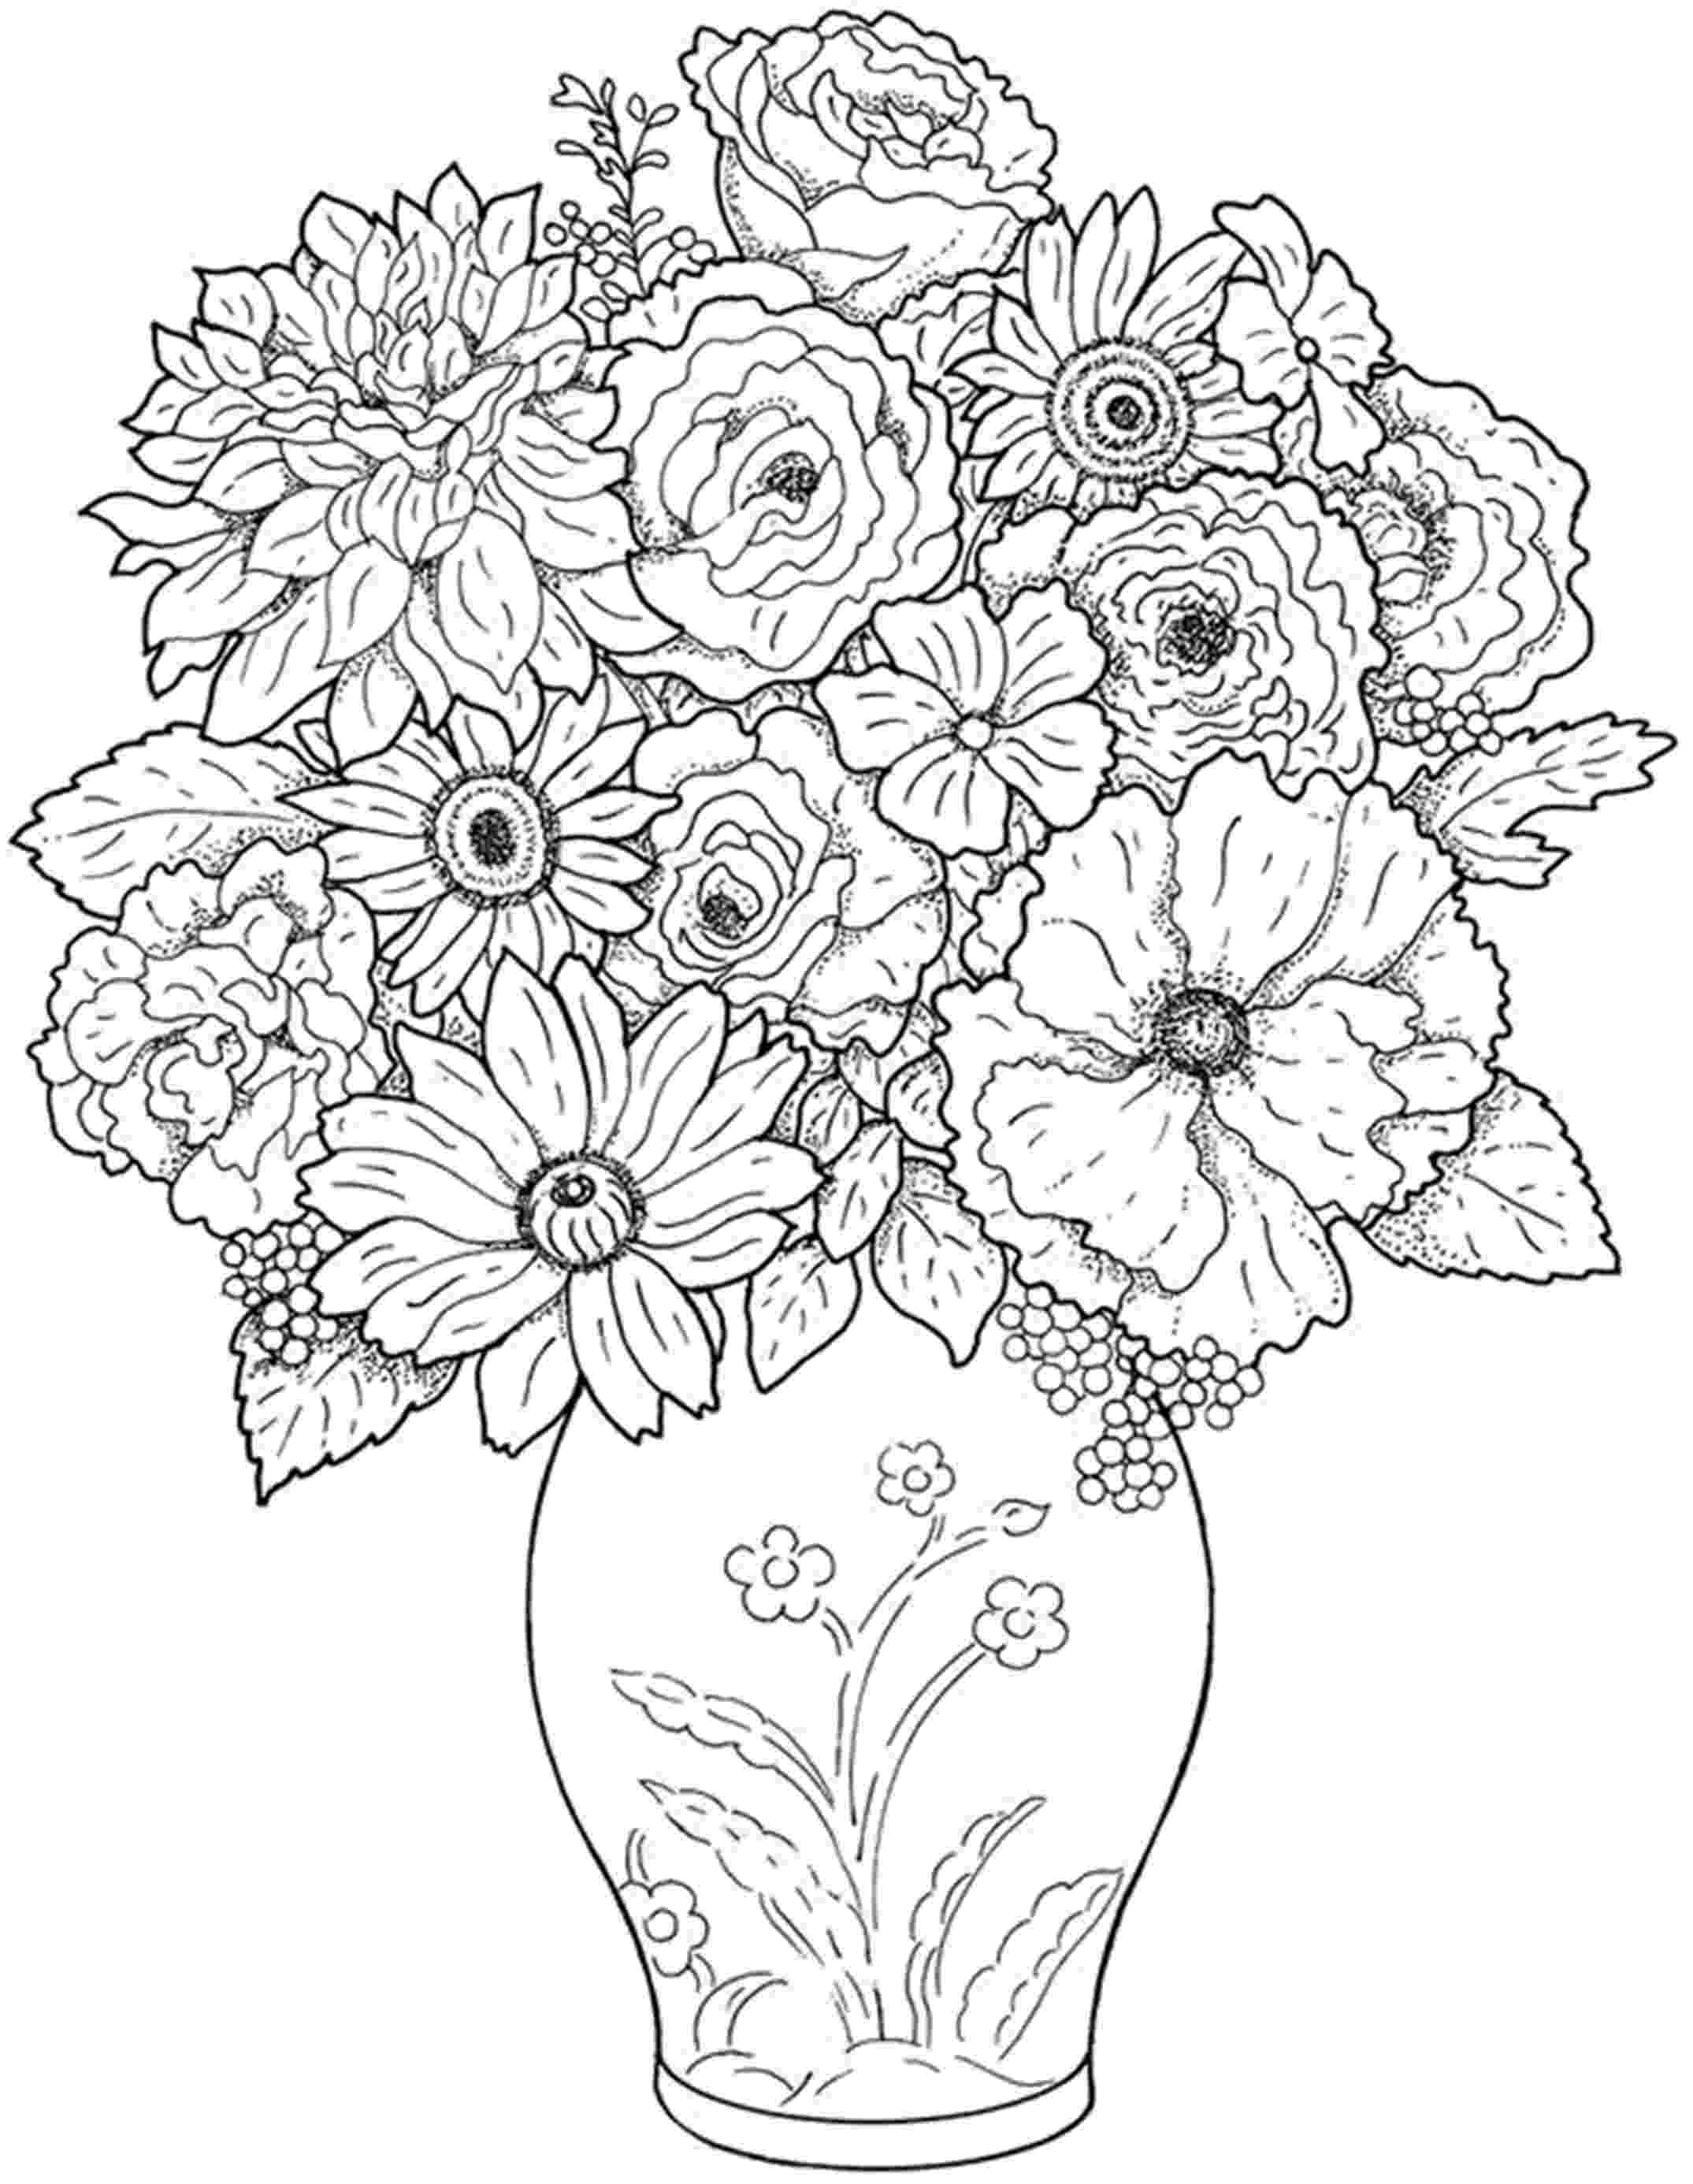 flower colouring pages to print free vase flower coloring pages colouring print pages to flower